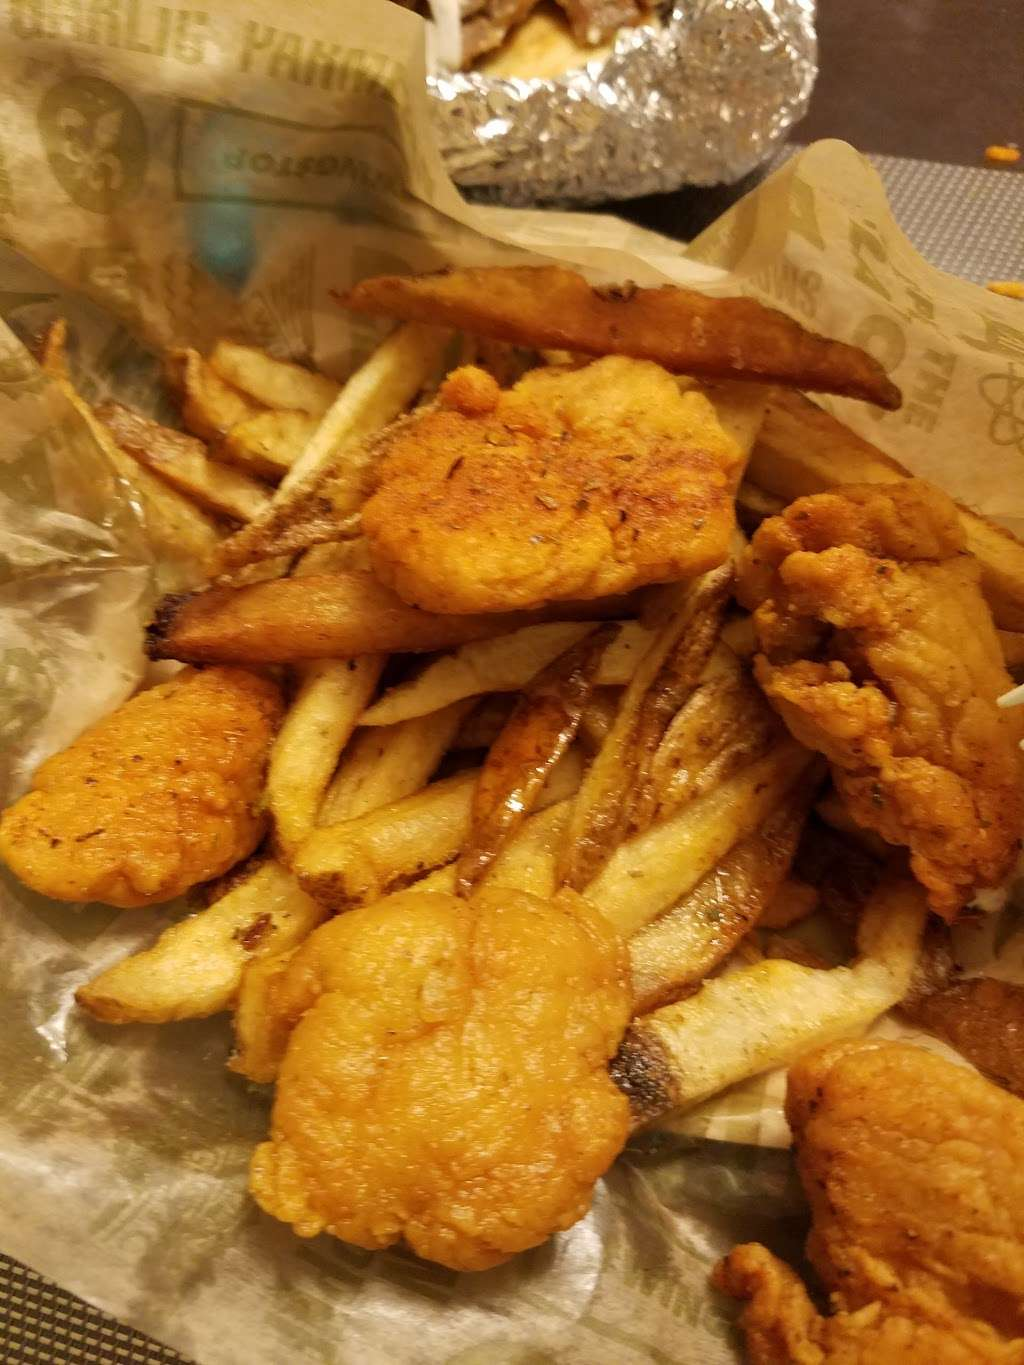 Wingstop - restaurant  | Photo 7 of 10 | Address: 2831 W 95th St, Evergreen Park, IL 60805, USA | Phone: (708) 425-9464